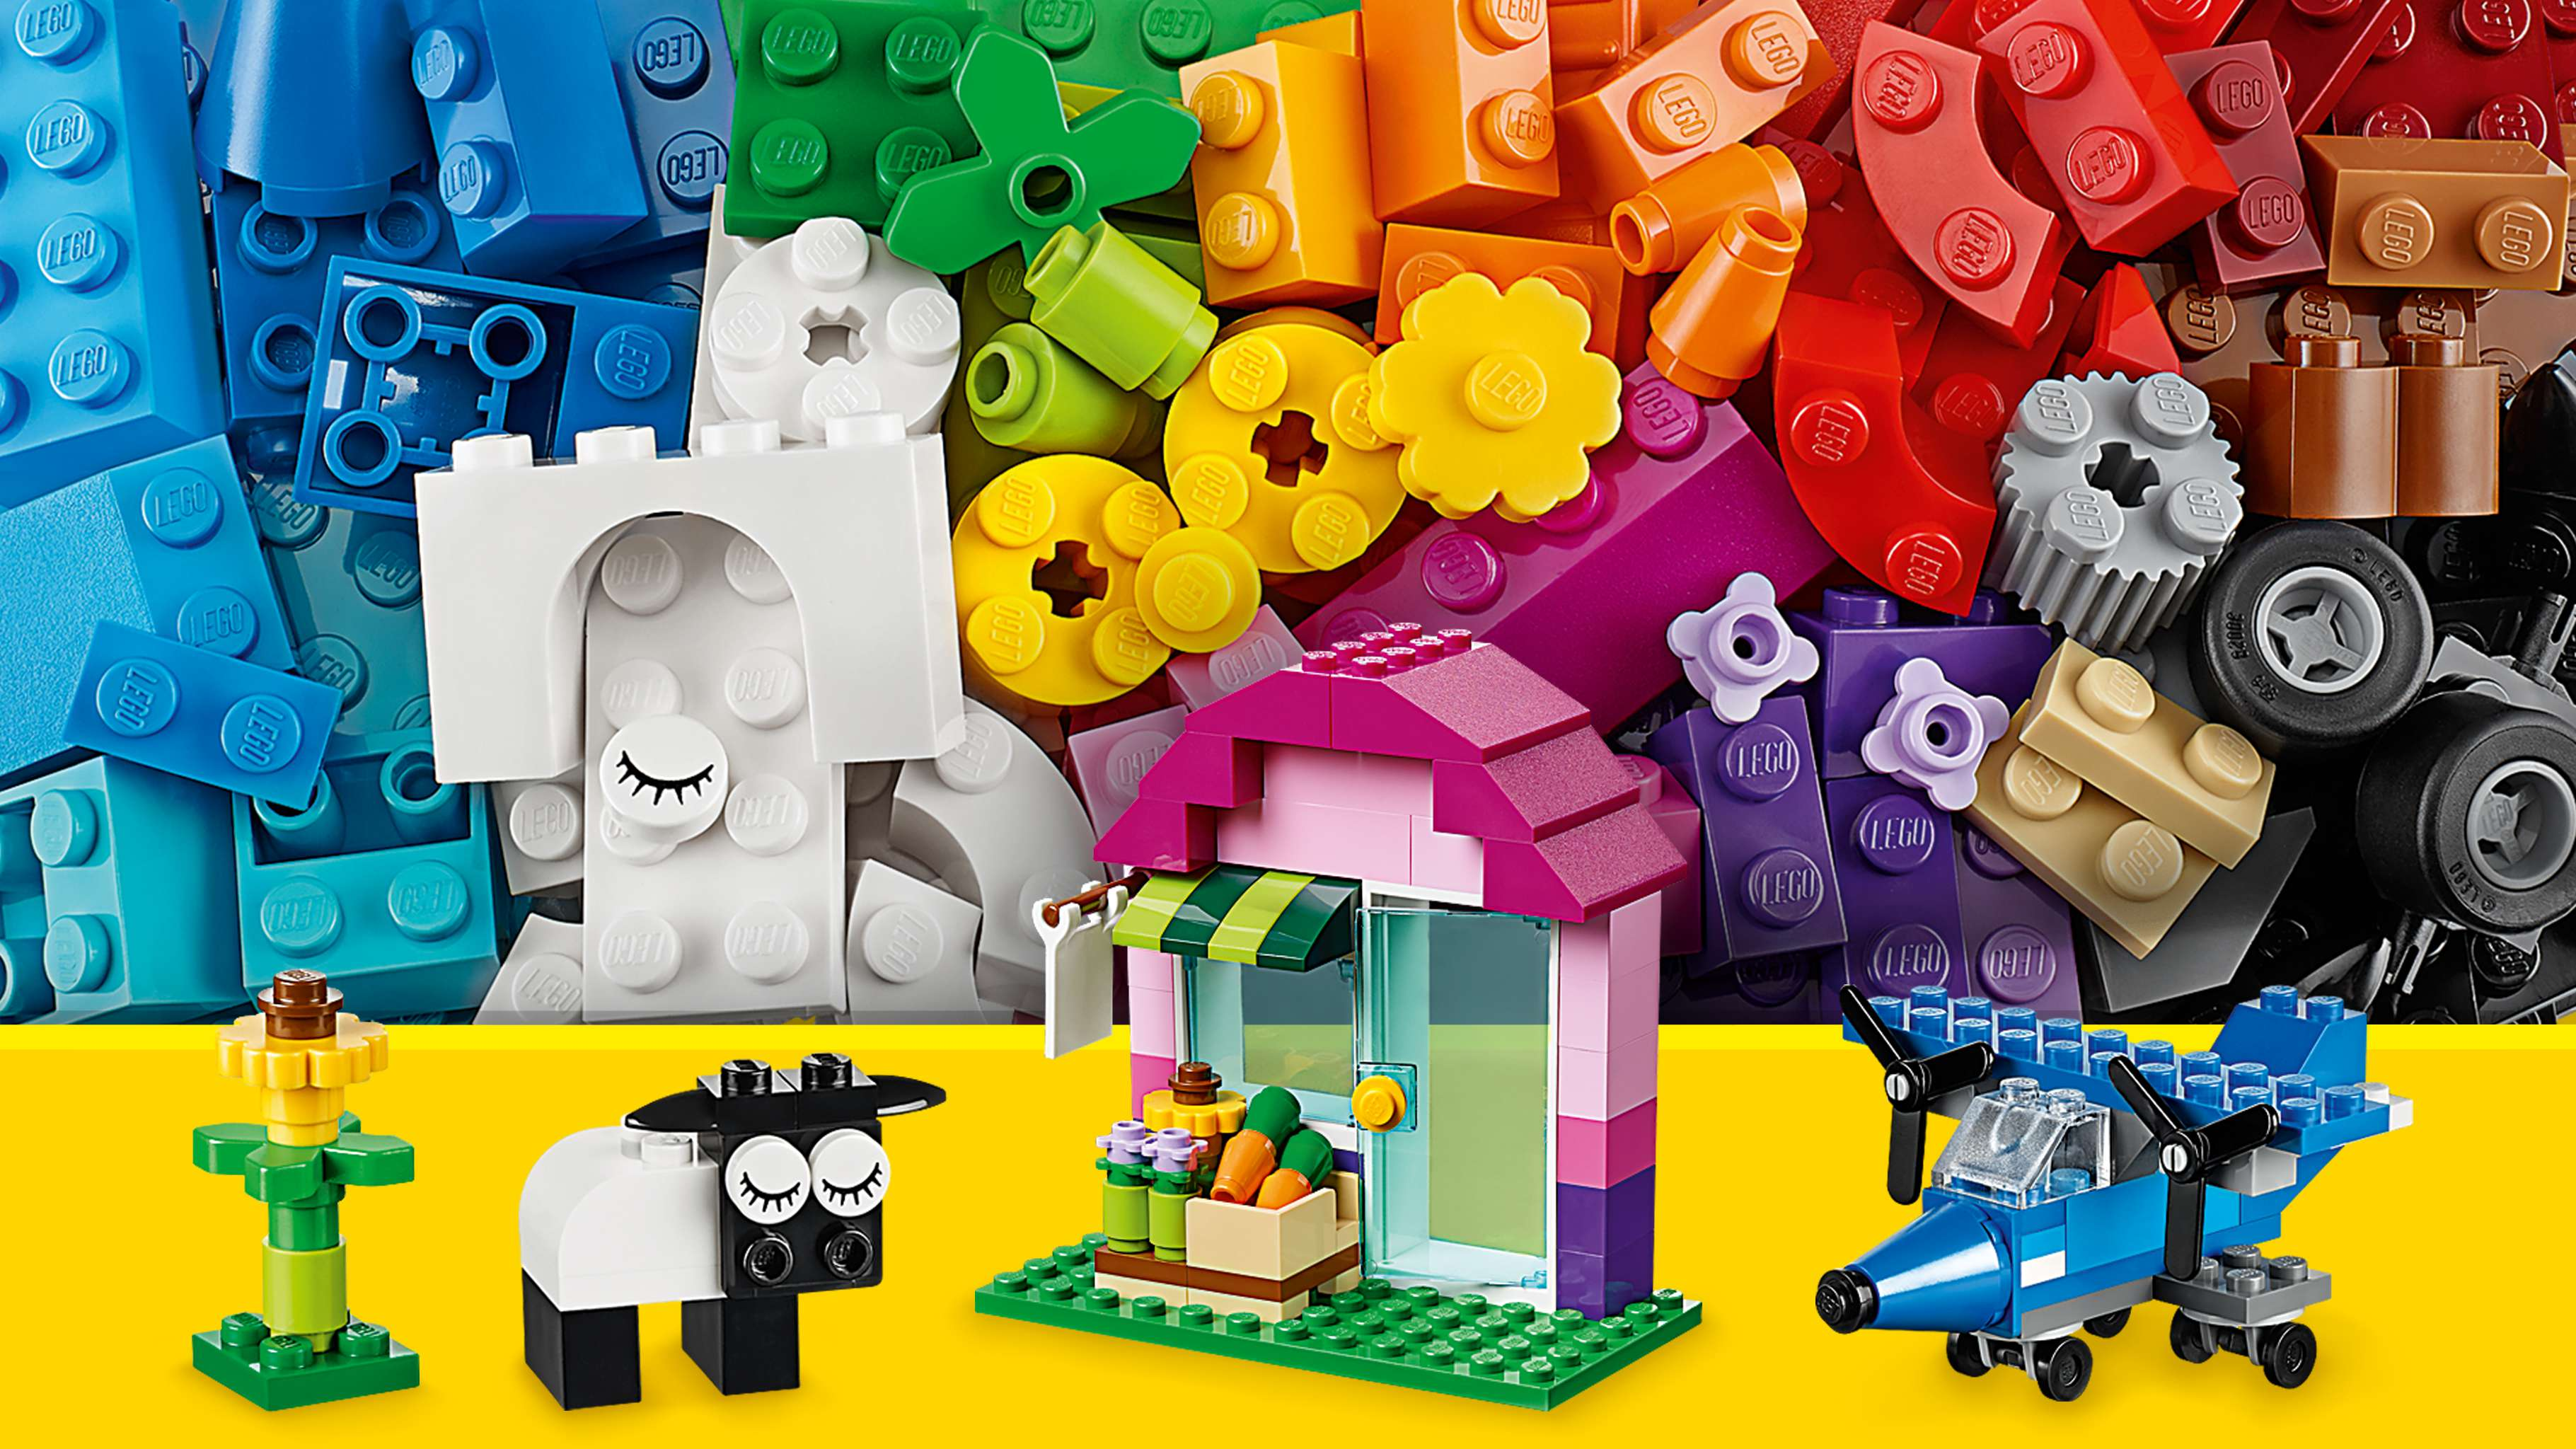 LEGO Classic Creative Bricks - 10692 - Use blue, green, pink, white and black bricks to build a sunflower, a house, a sheep or a plane with propellers.